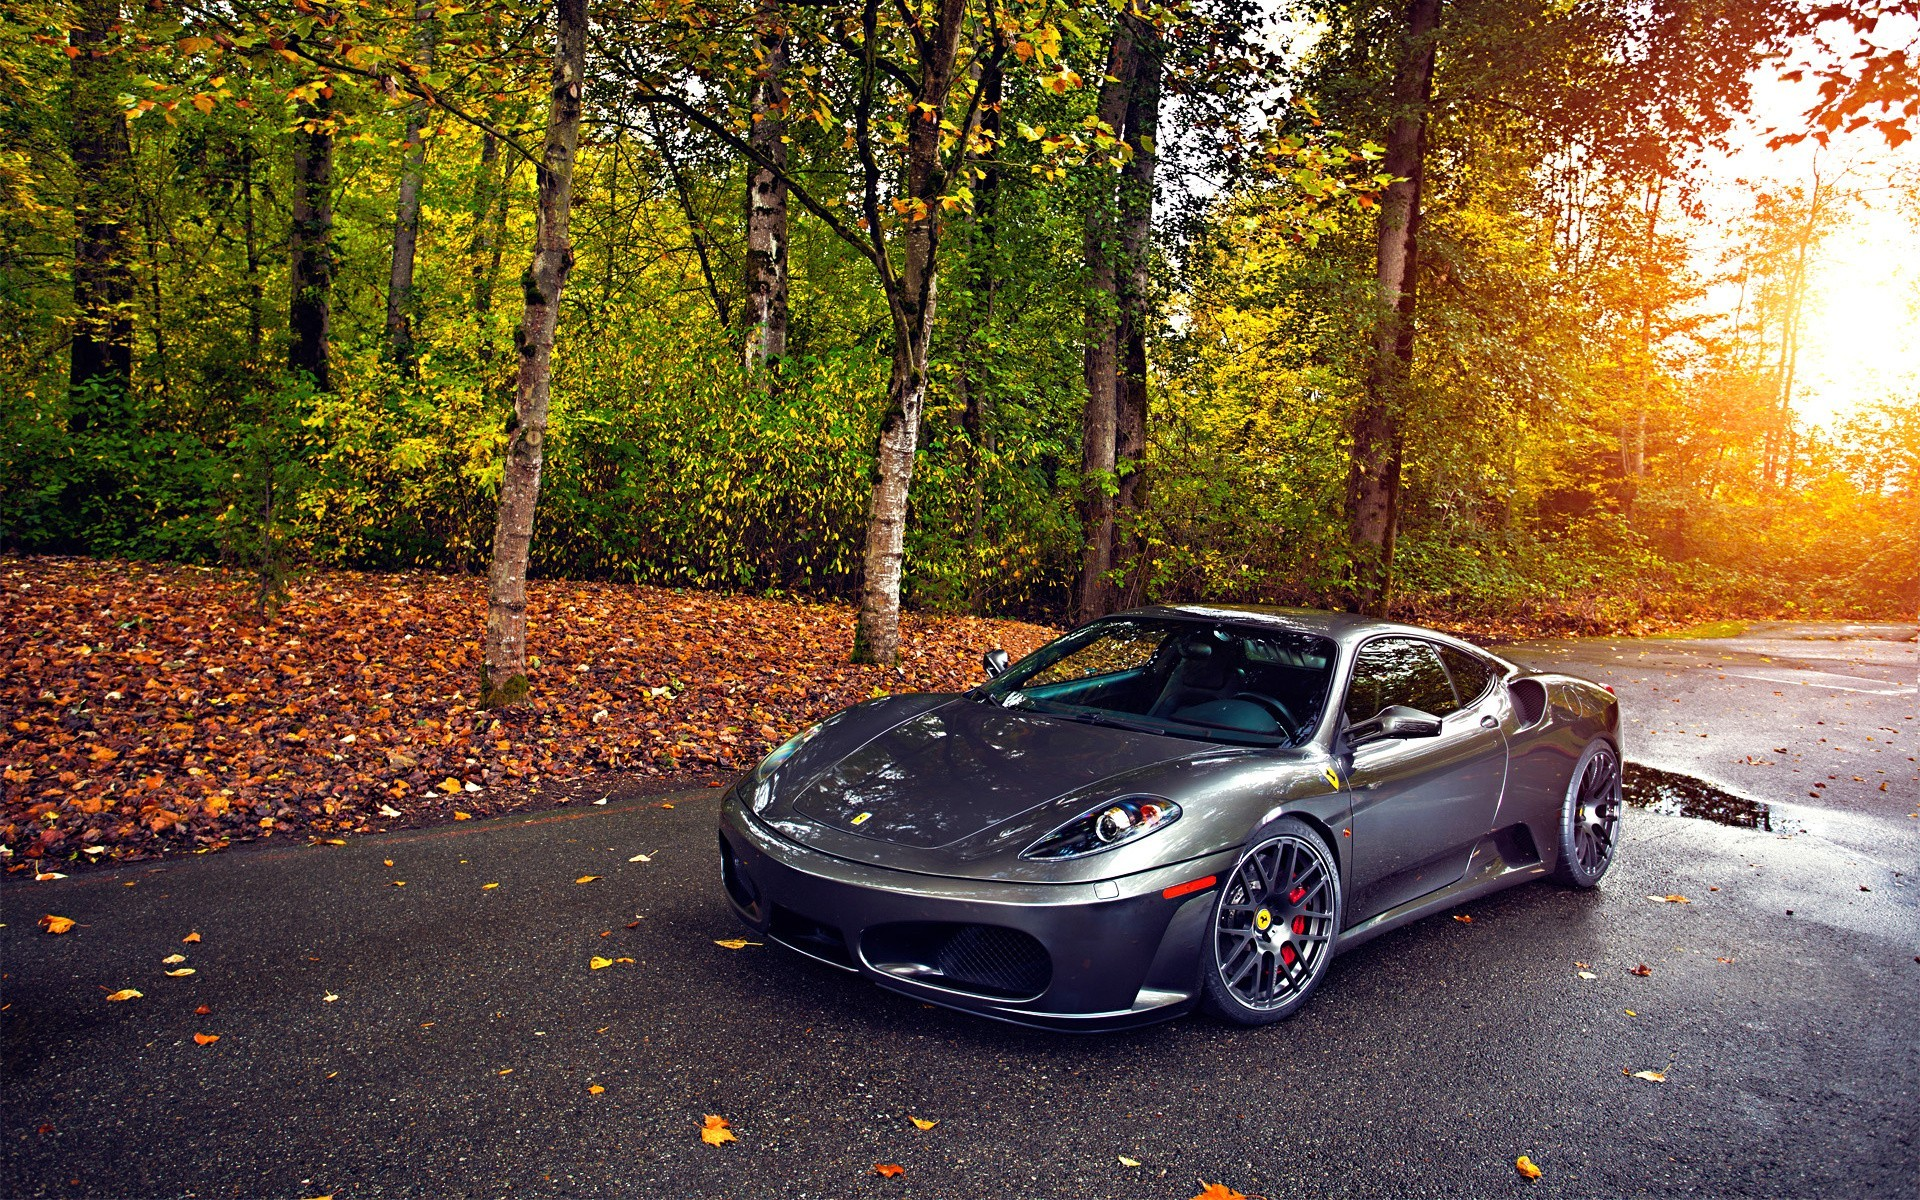 Imagenes De Autos Hd: Cars Vehicles Ferrari F430 Wallpaper